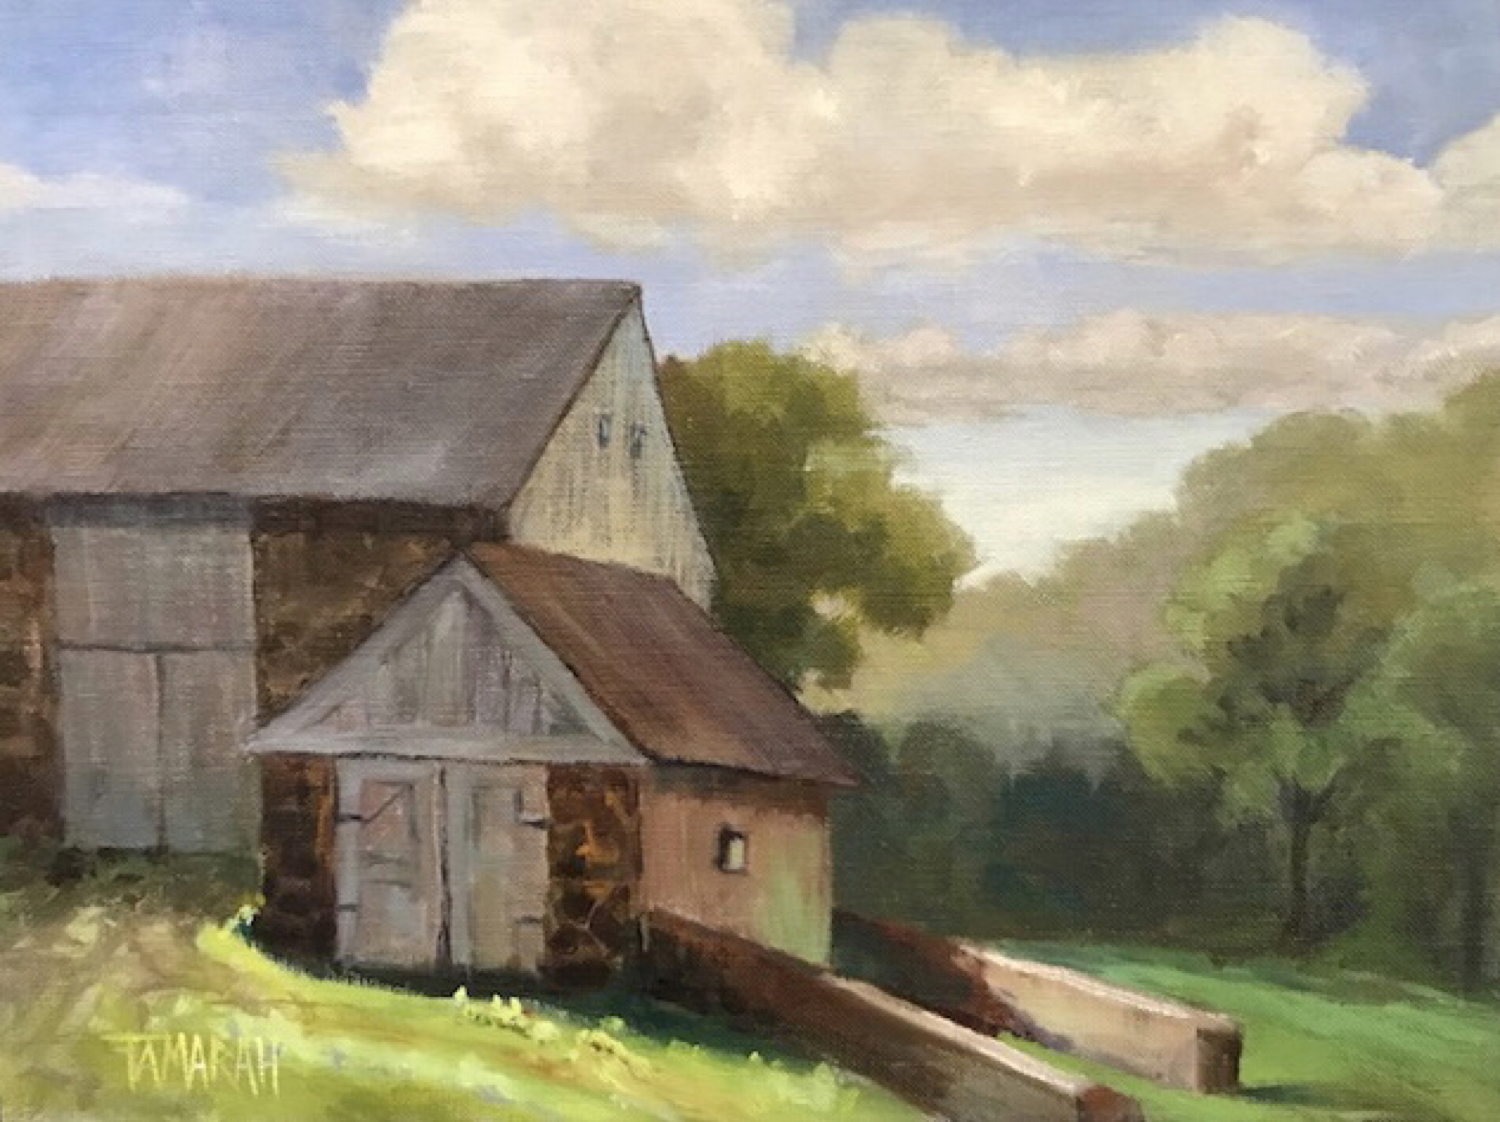 Sterlings Farm - Tamara Hutchinson